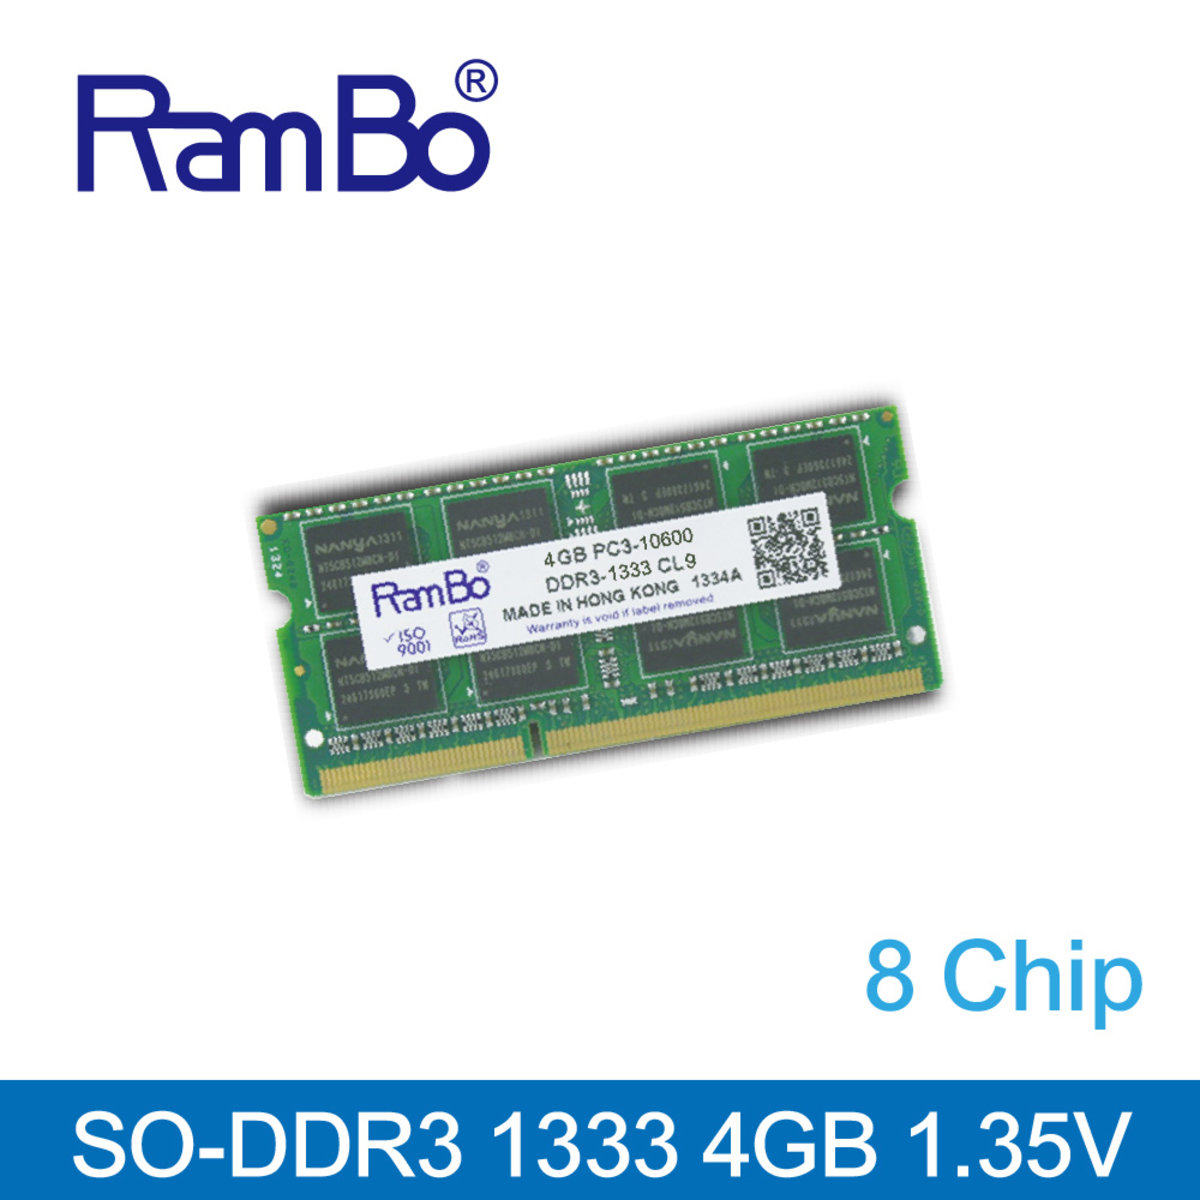 4GB DDR3 1333MHz SO DIMM 8-Chip 1.35V Memory for Notebook / Laptop